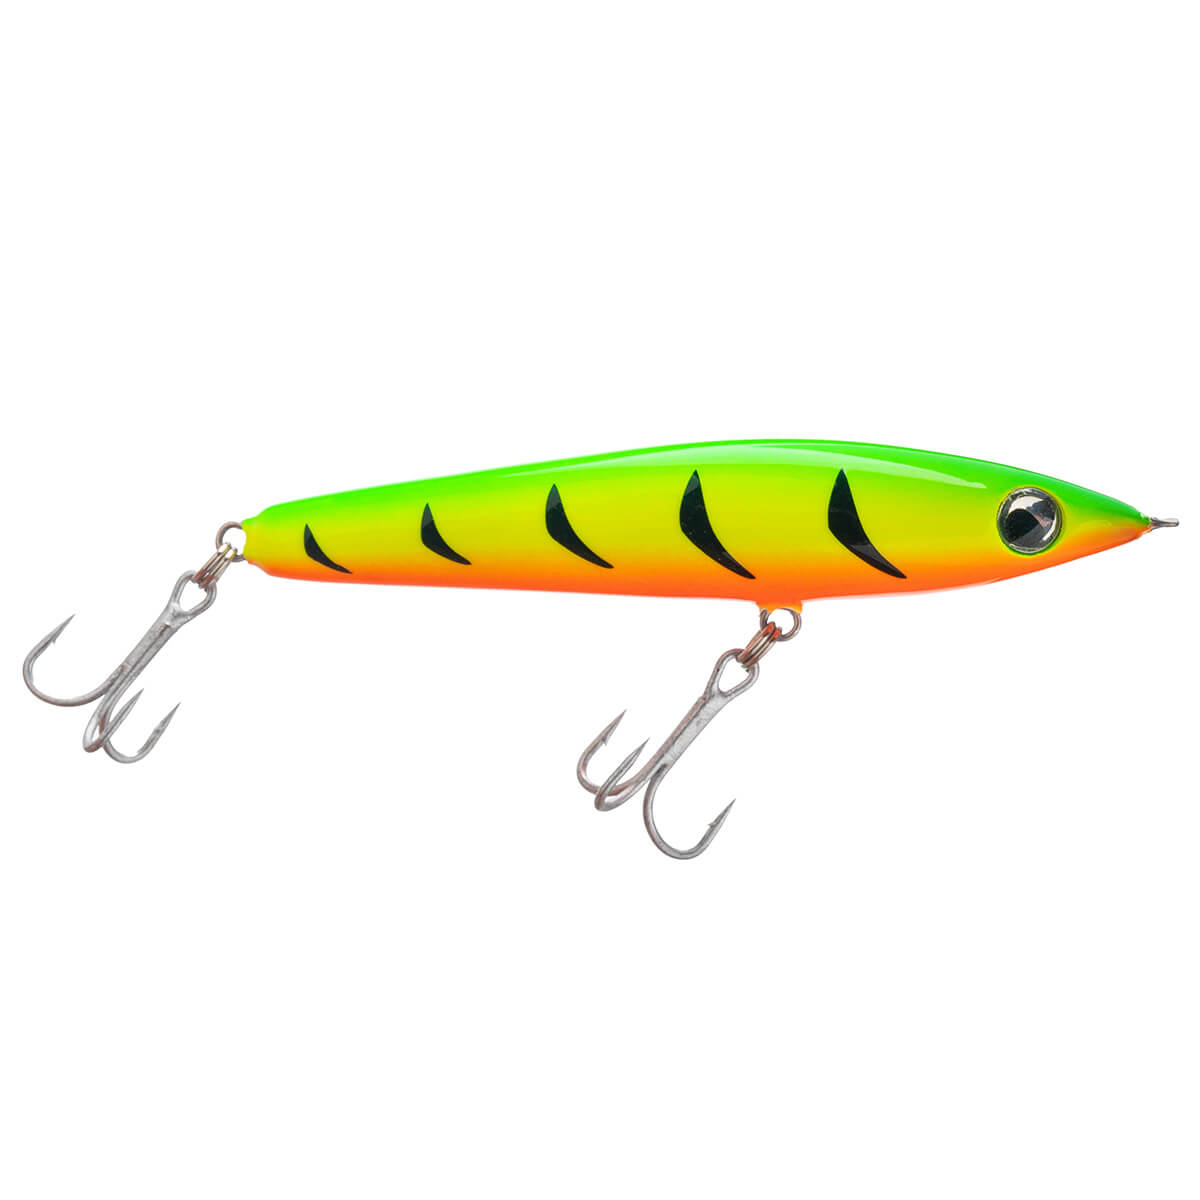 ISCA OCL LURES SPITFIRE BABY - 6,1CM 7G